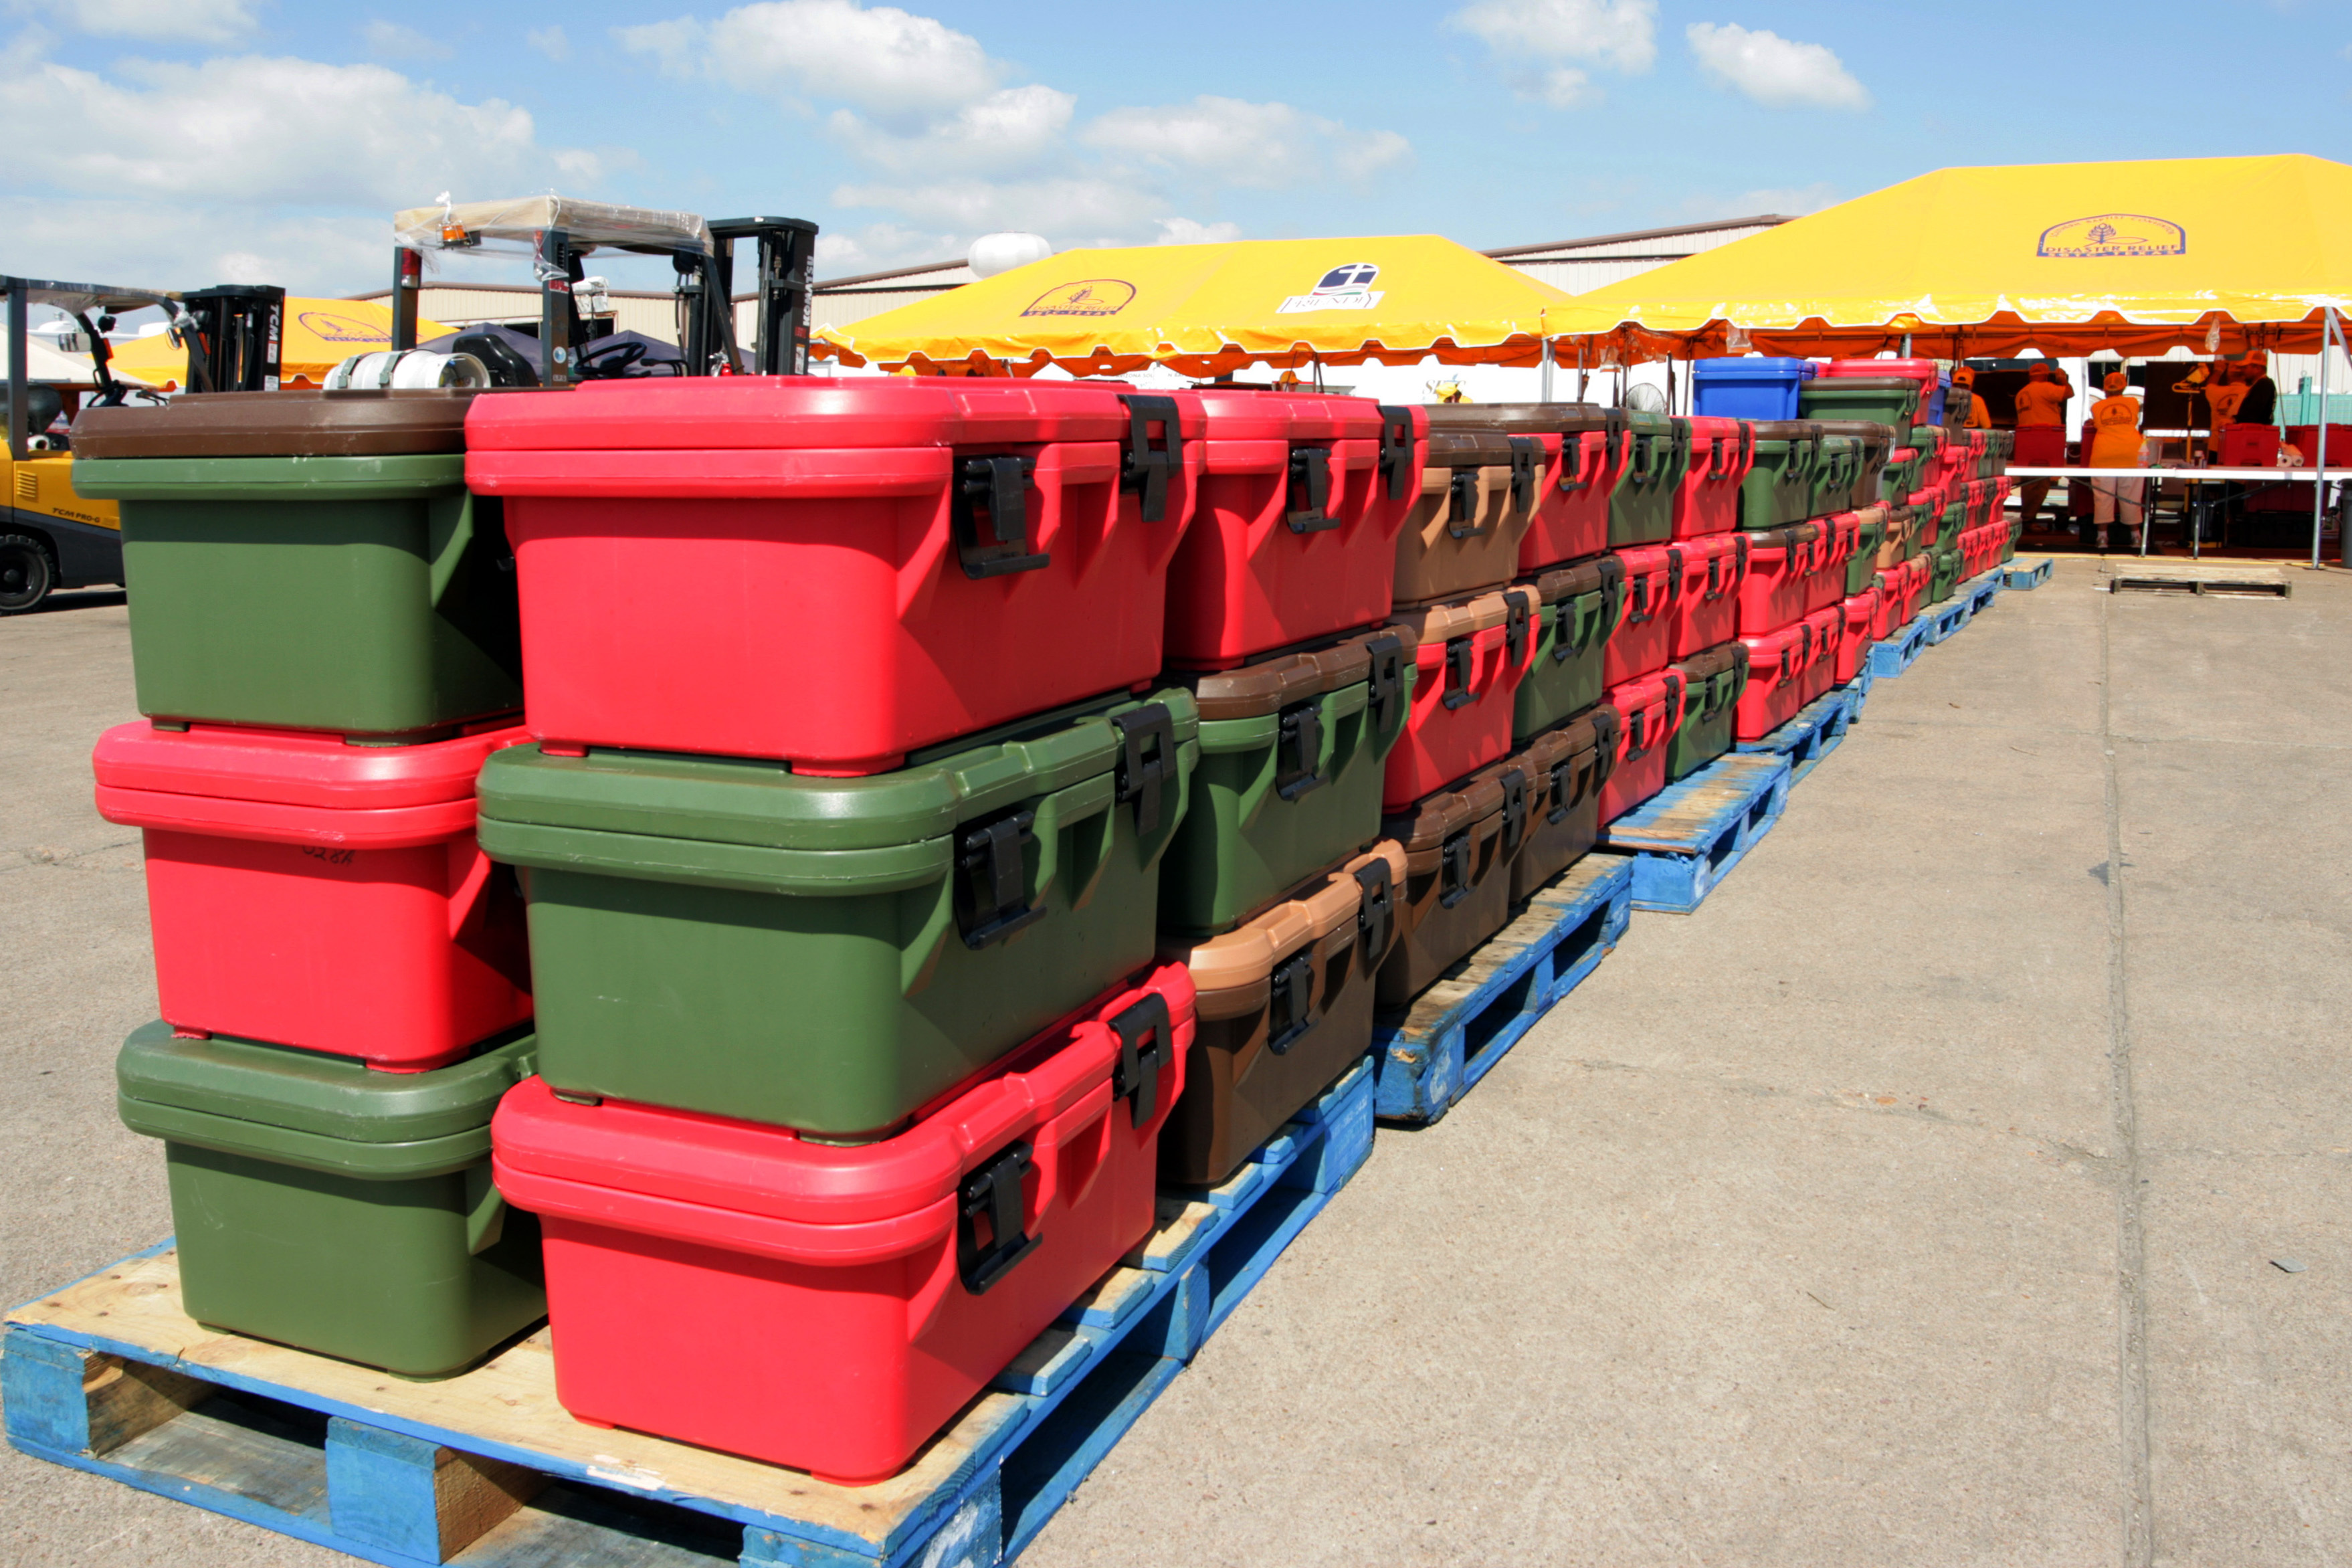 a row of stack bins